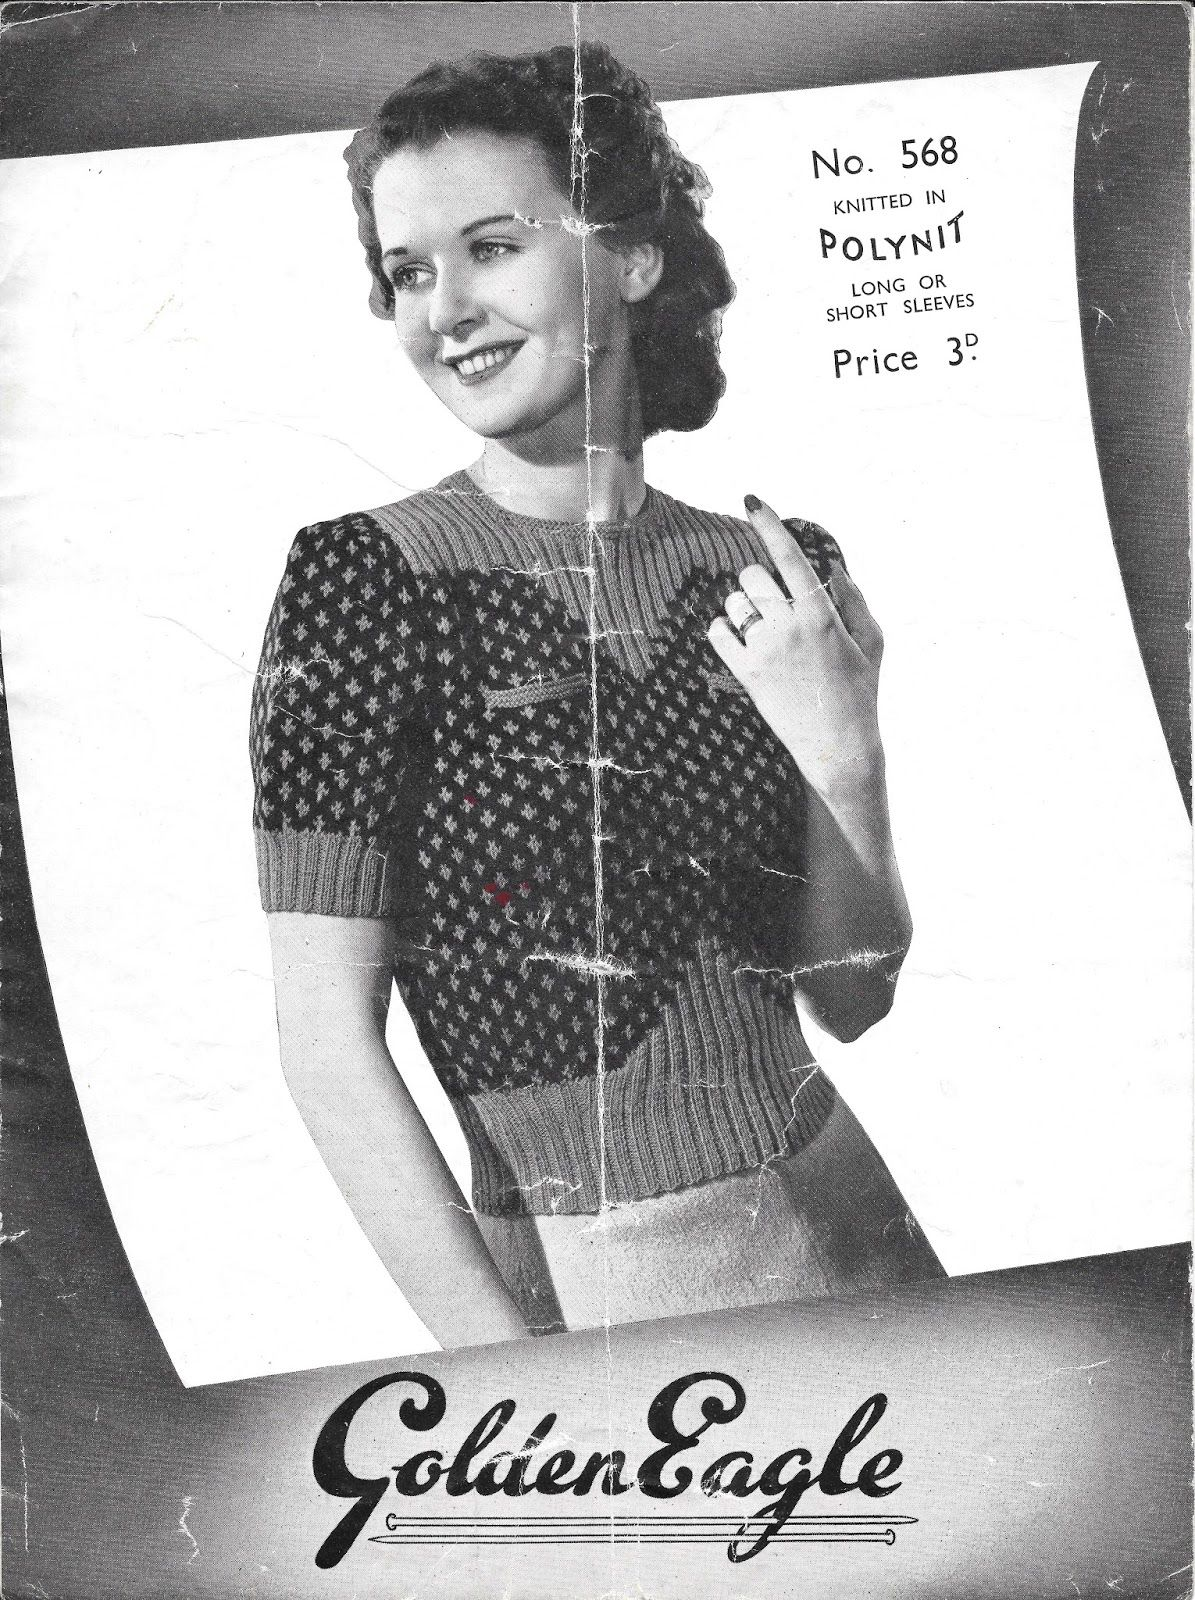 A really classic knitting pattern this month, a solid 1940s number ...